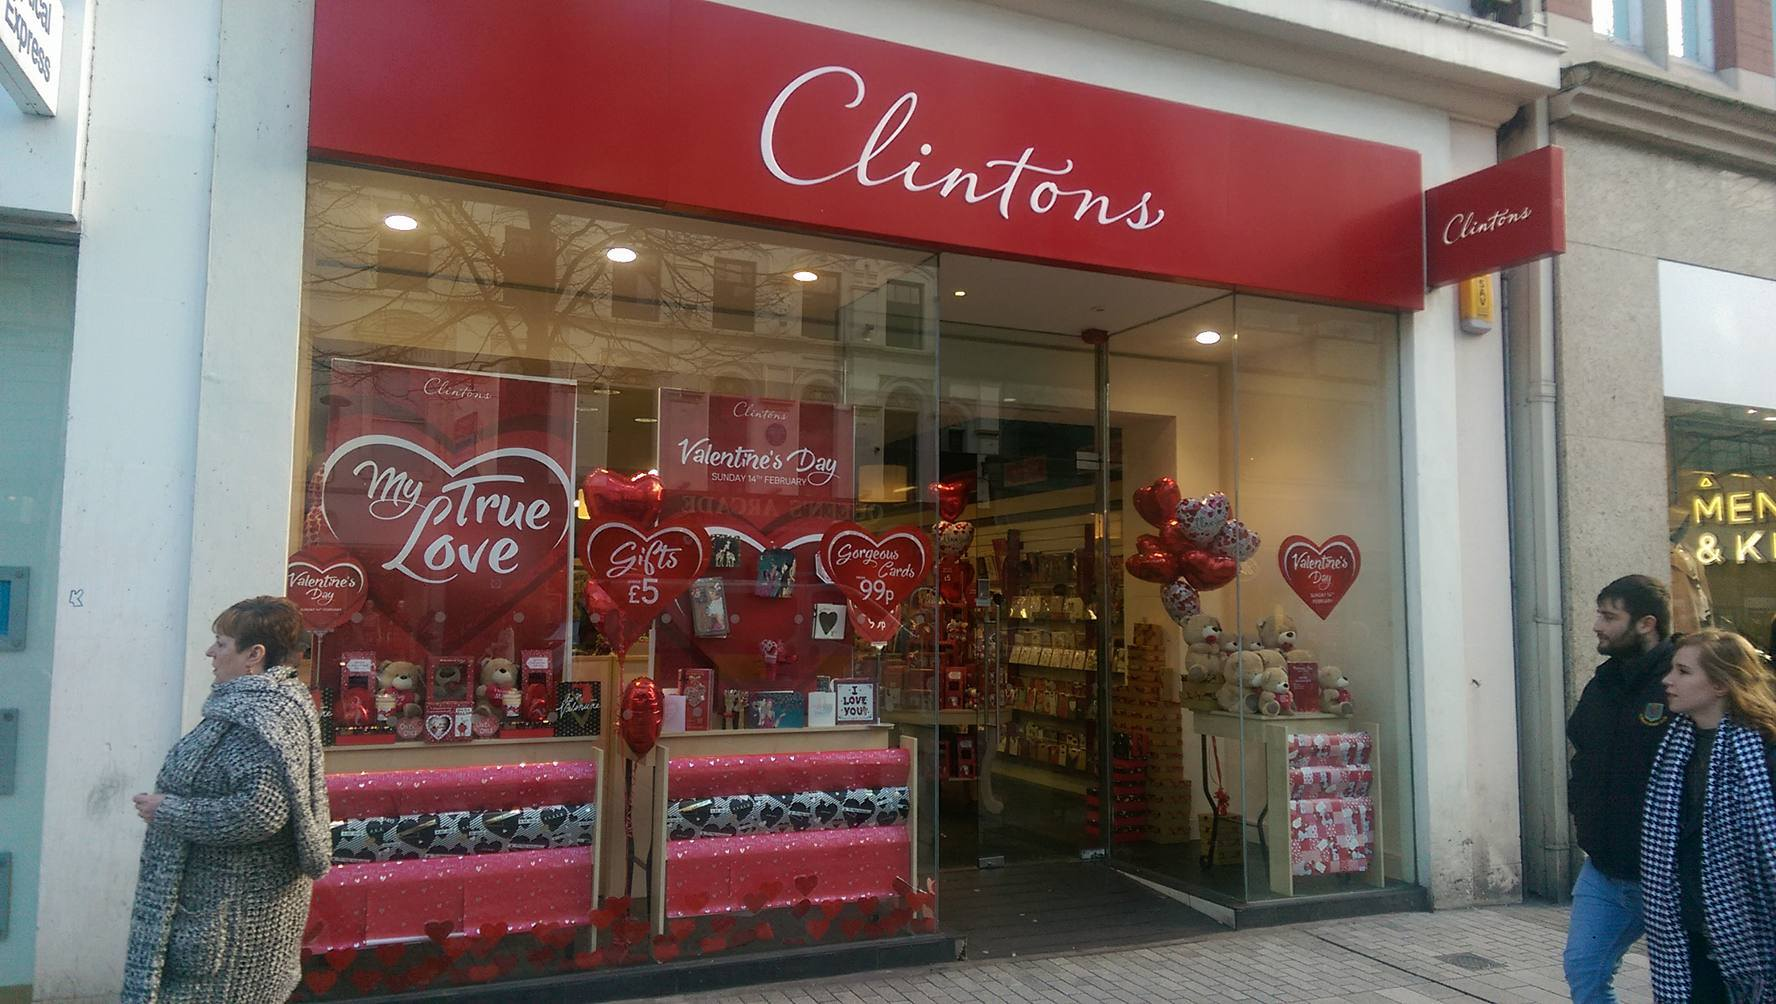 At Clintons, the decoration for Valentine's day come with hearts stick on the window and also with discounts.